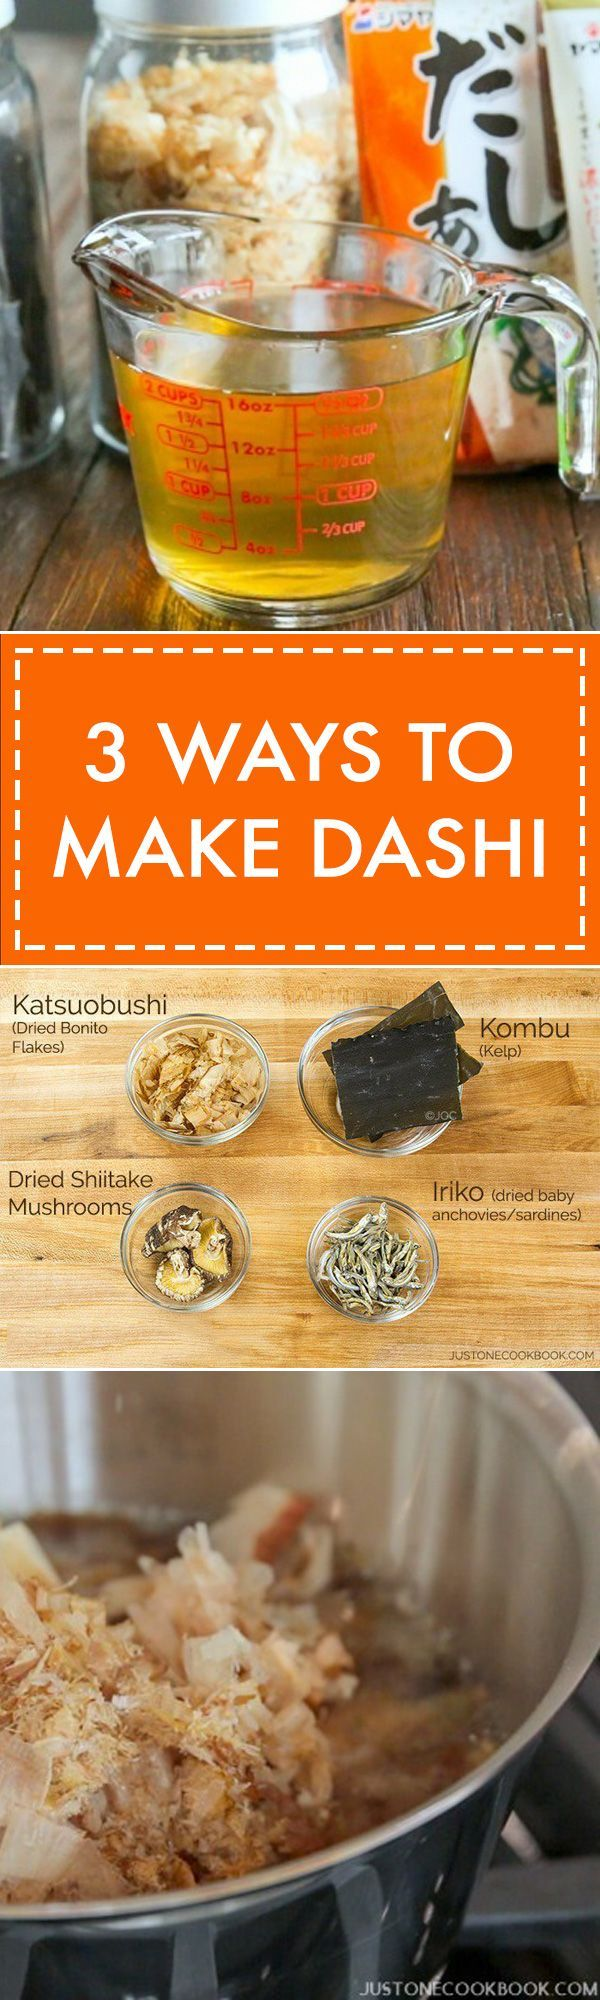 3 Ways to Make Dashi | Easy Japanese Recipes at JustOneCookbook.com